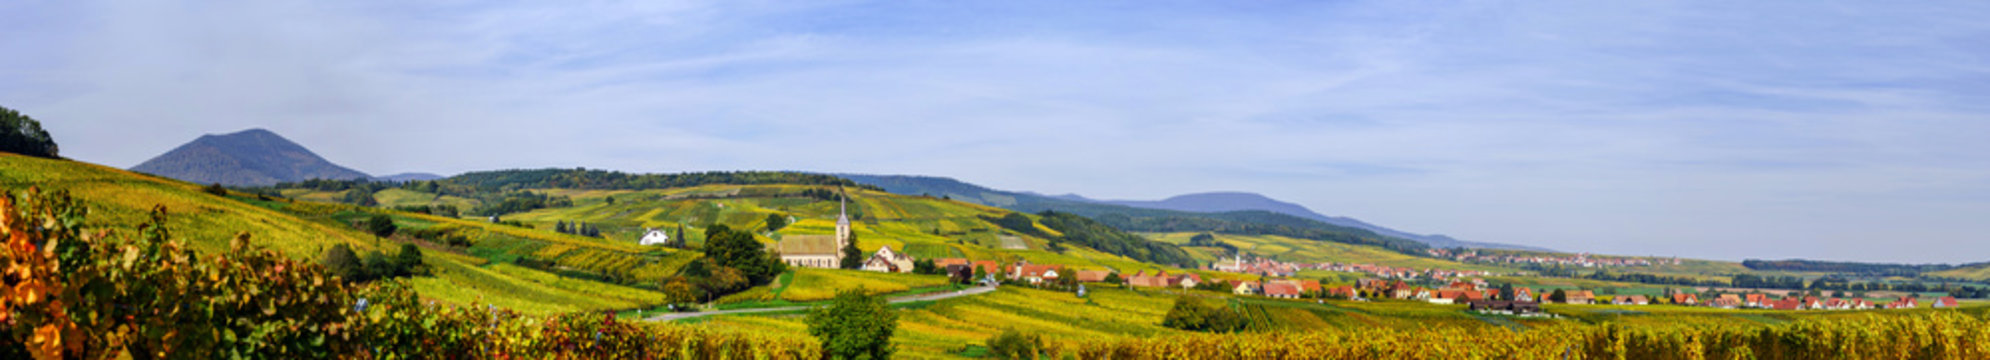 Beautiful colorful vineyards, autumn in Alsace